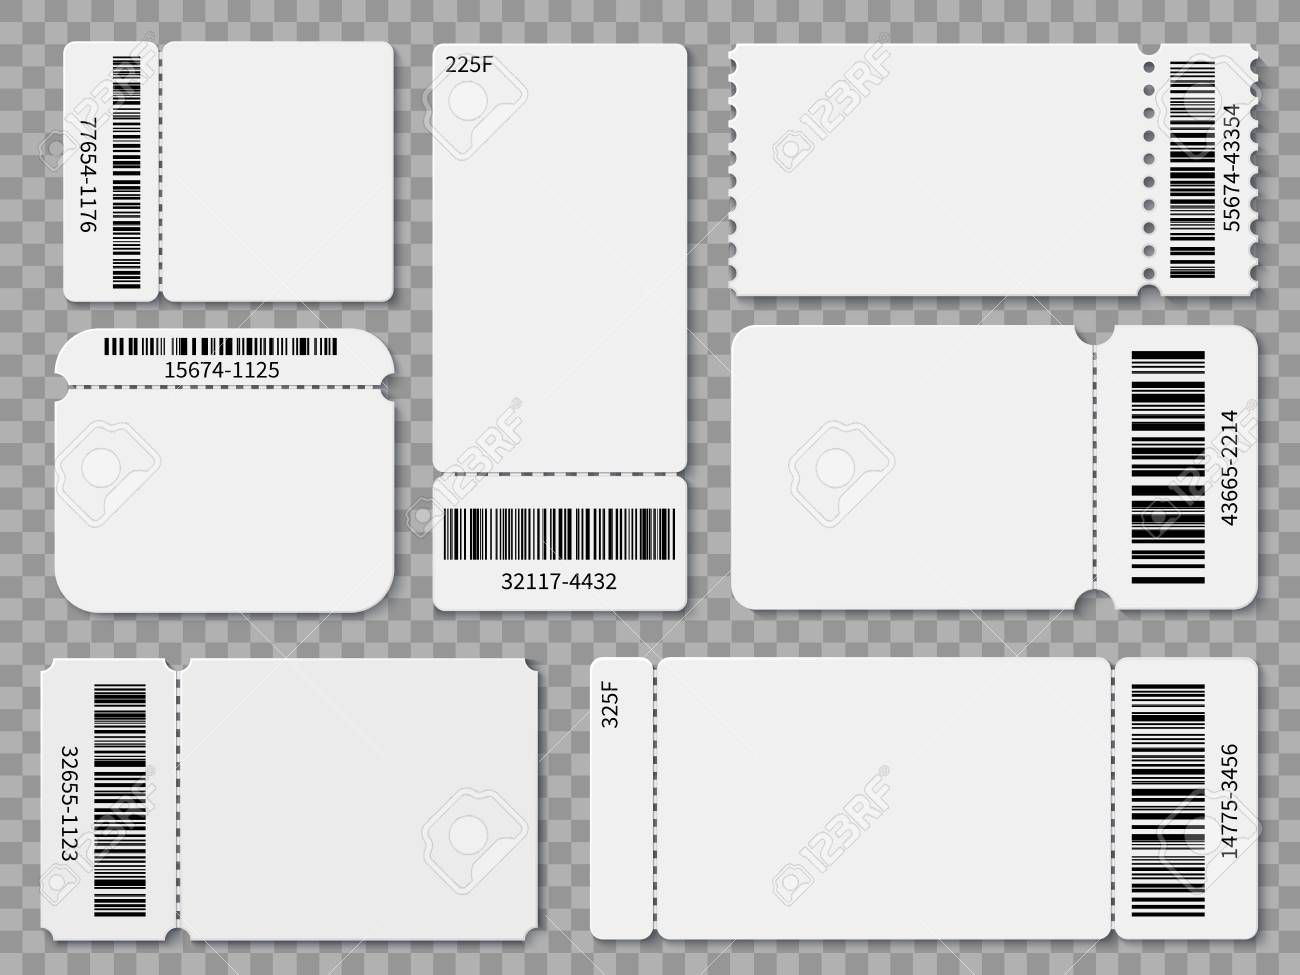 005 Excellent Free Printable Ticket Template Sample  Editable Airline Christma For GiftFull